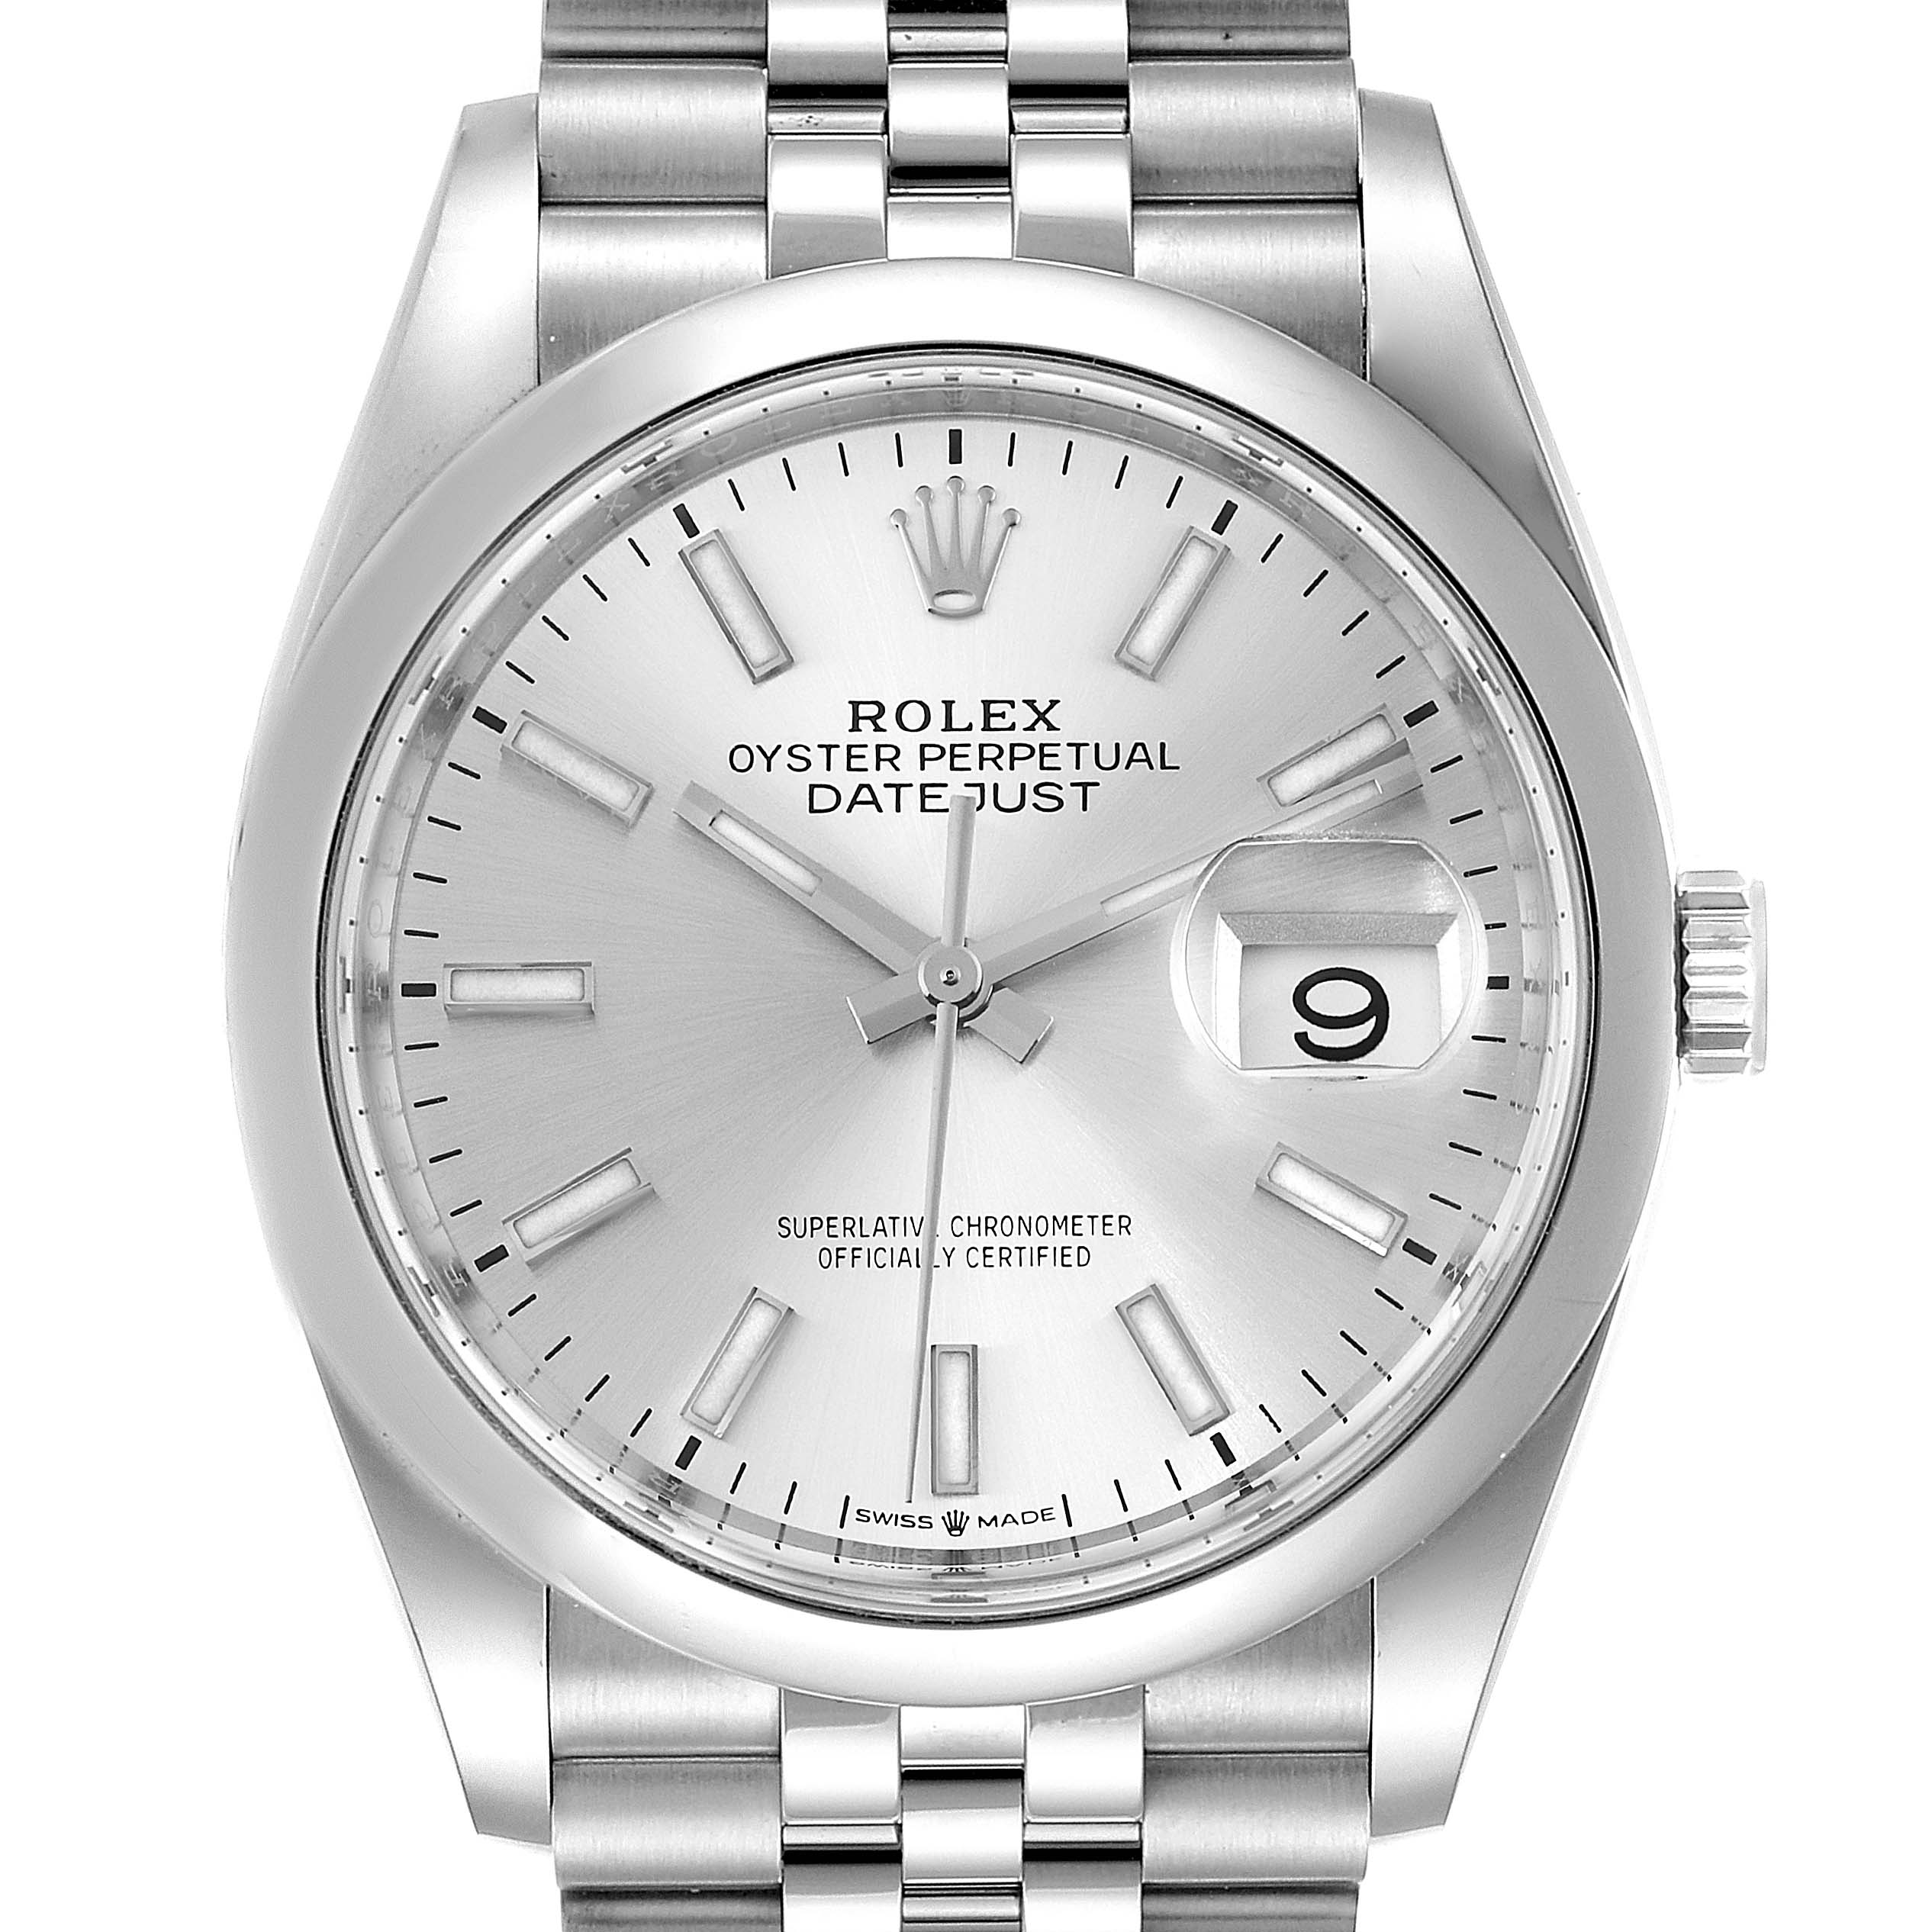 Photo of Rolex Datejust Silver Dial Jubilee Bracelet Mens Watch 126200 Box Card